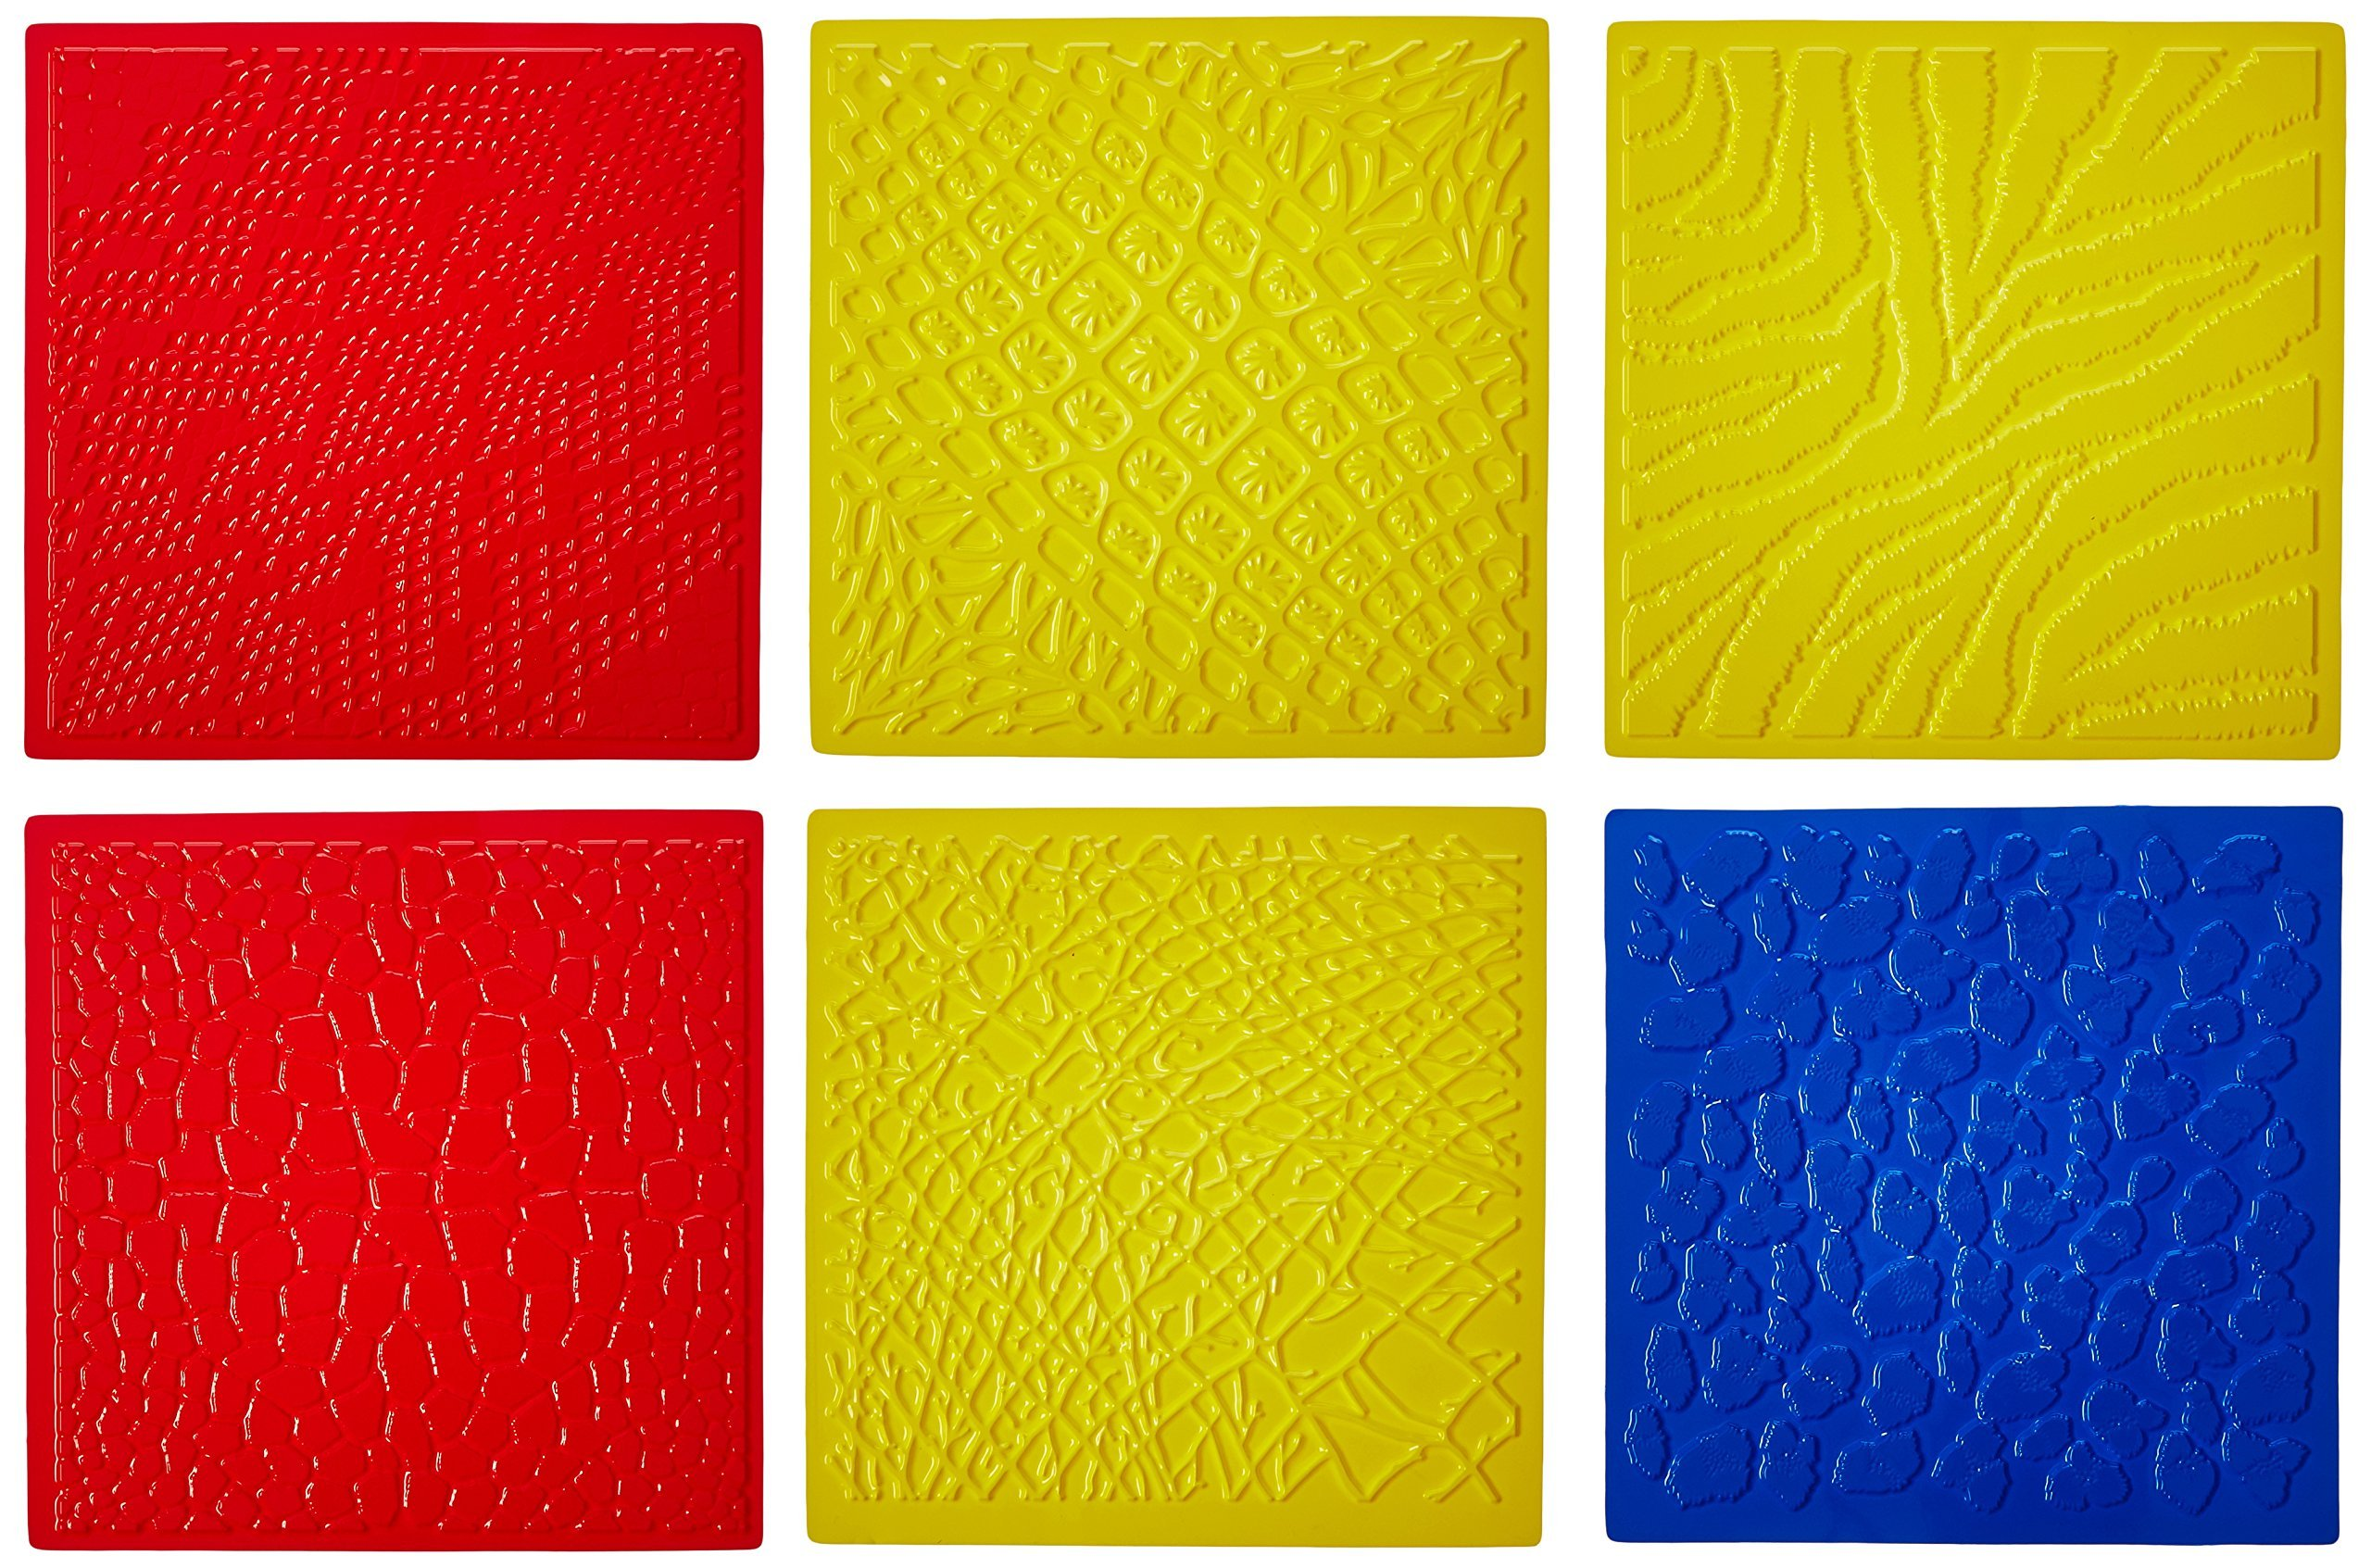 ROYLCO R5817 7 by 7-Inch Animal Skins Rubbing Plates, 6-Pack by Roylco